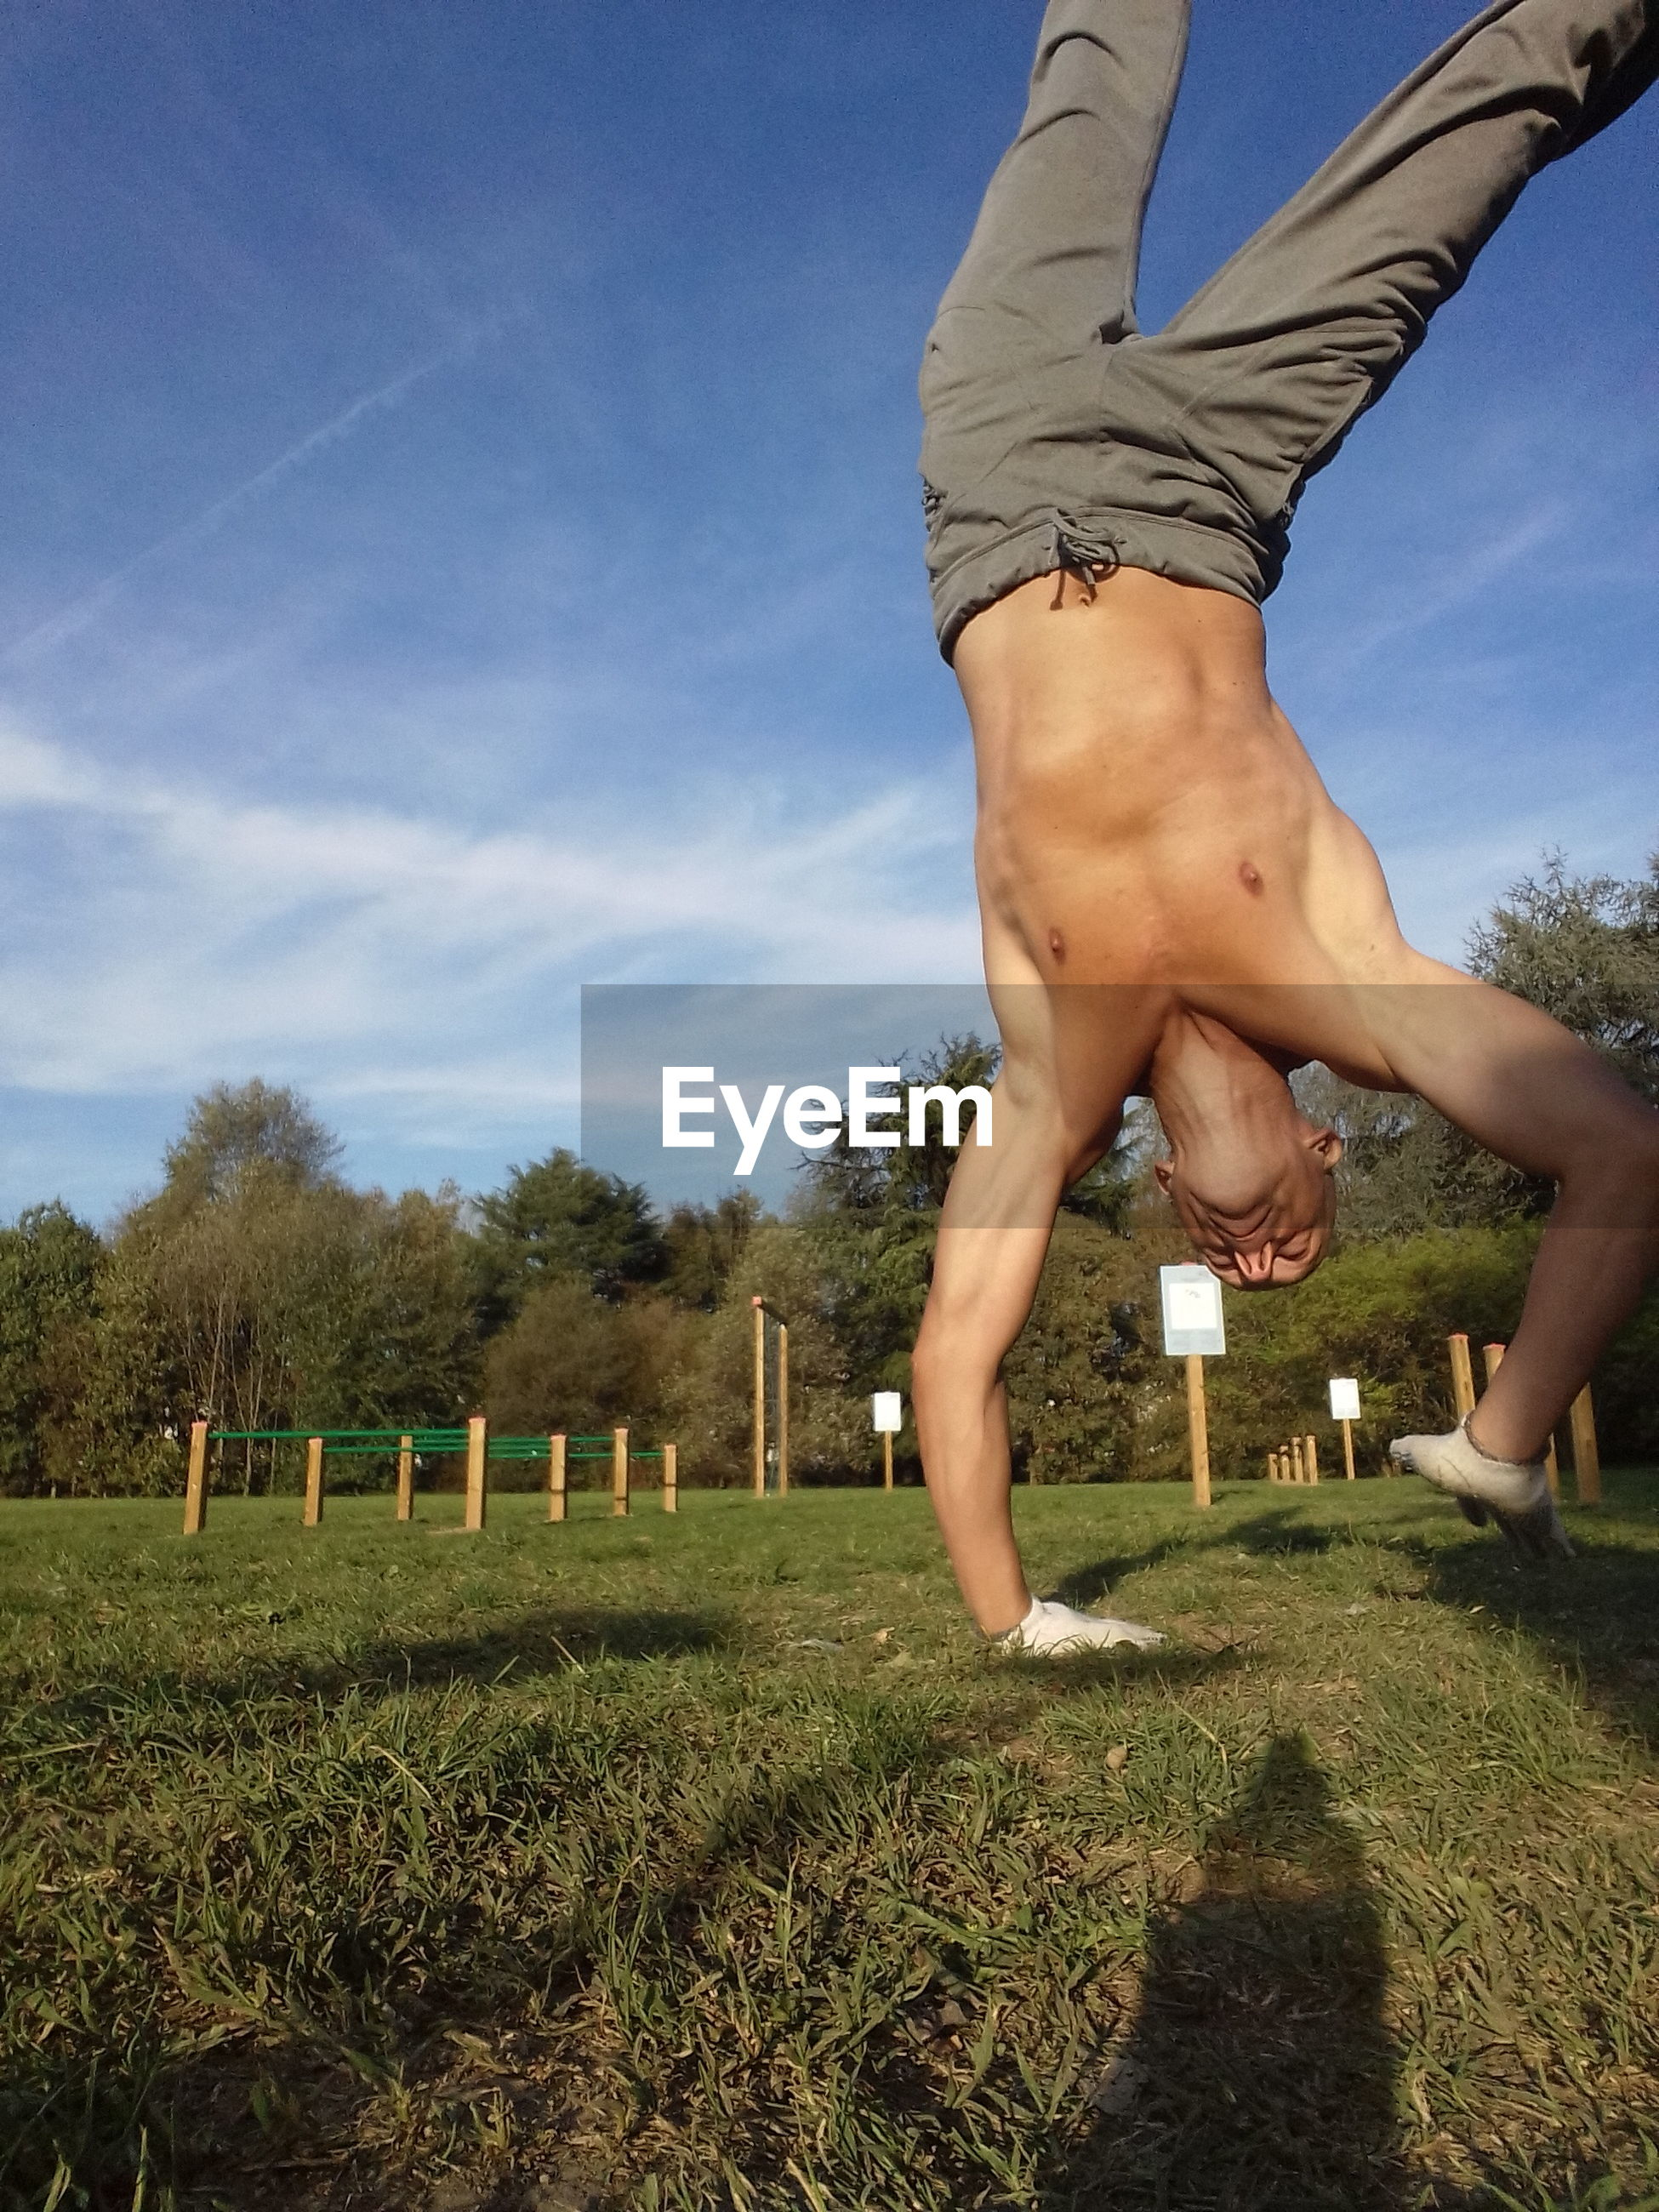 Shirtless man practicing handstand at park against blue sky